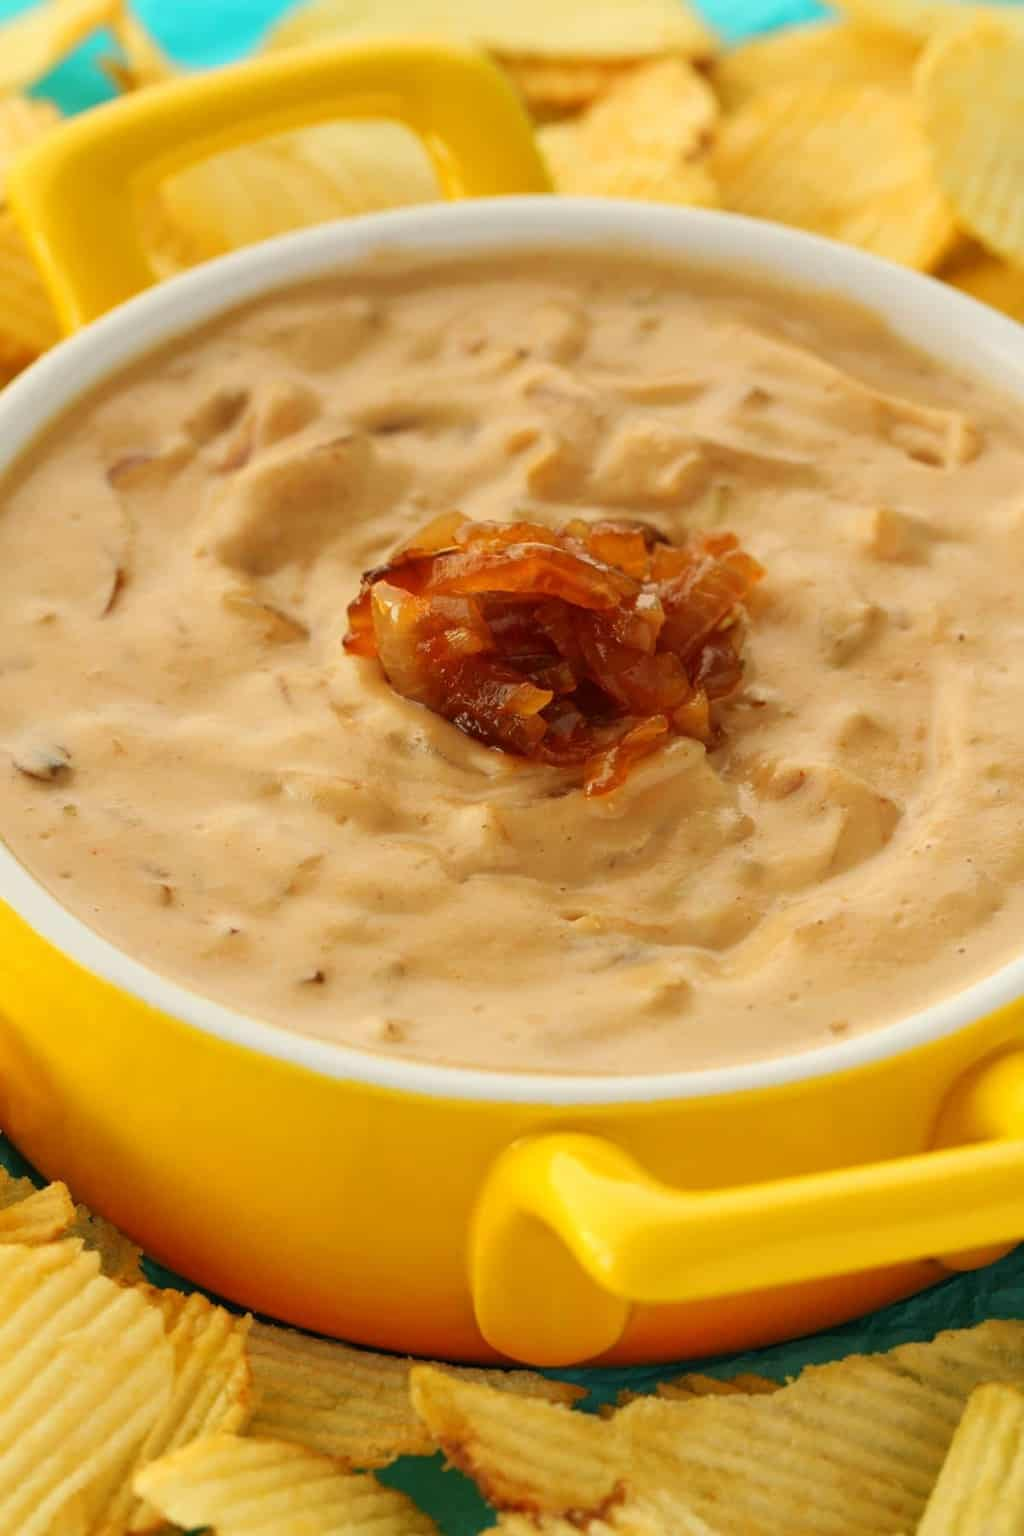 Vegan Onion Dip in a yellow and white serving dish surrounded by chips.